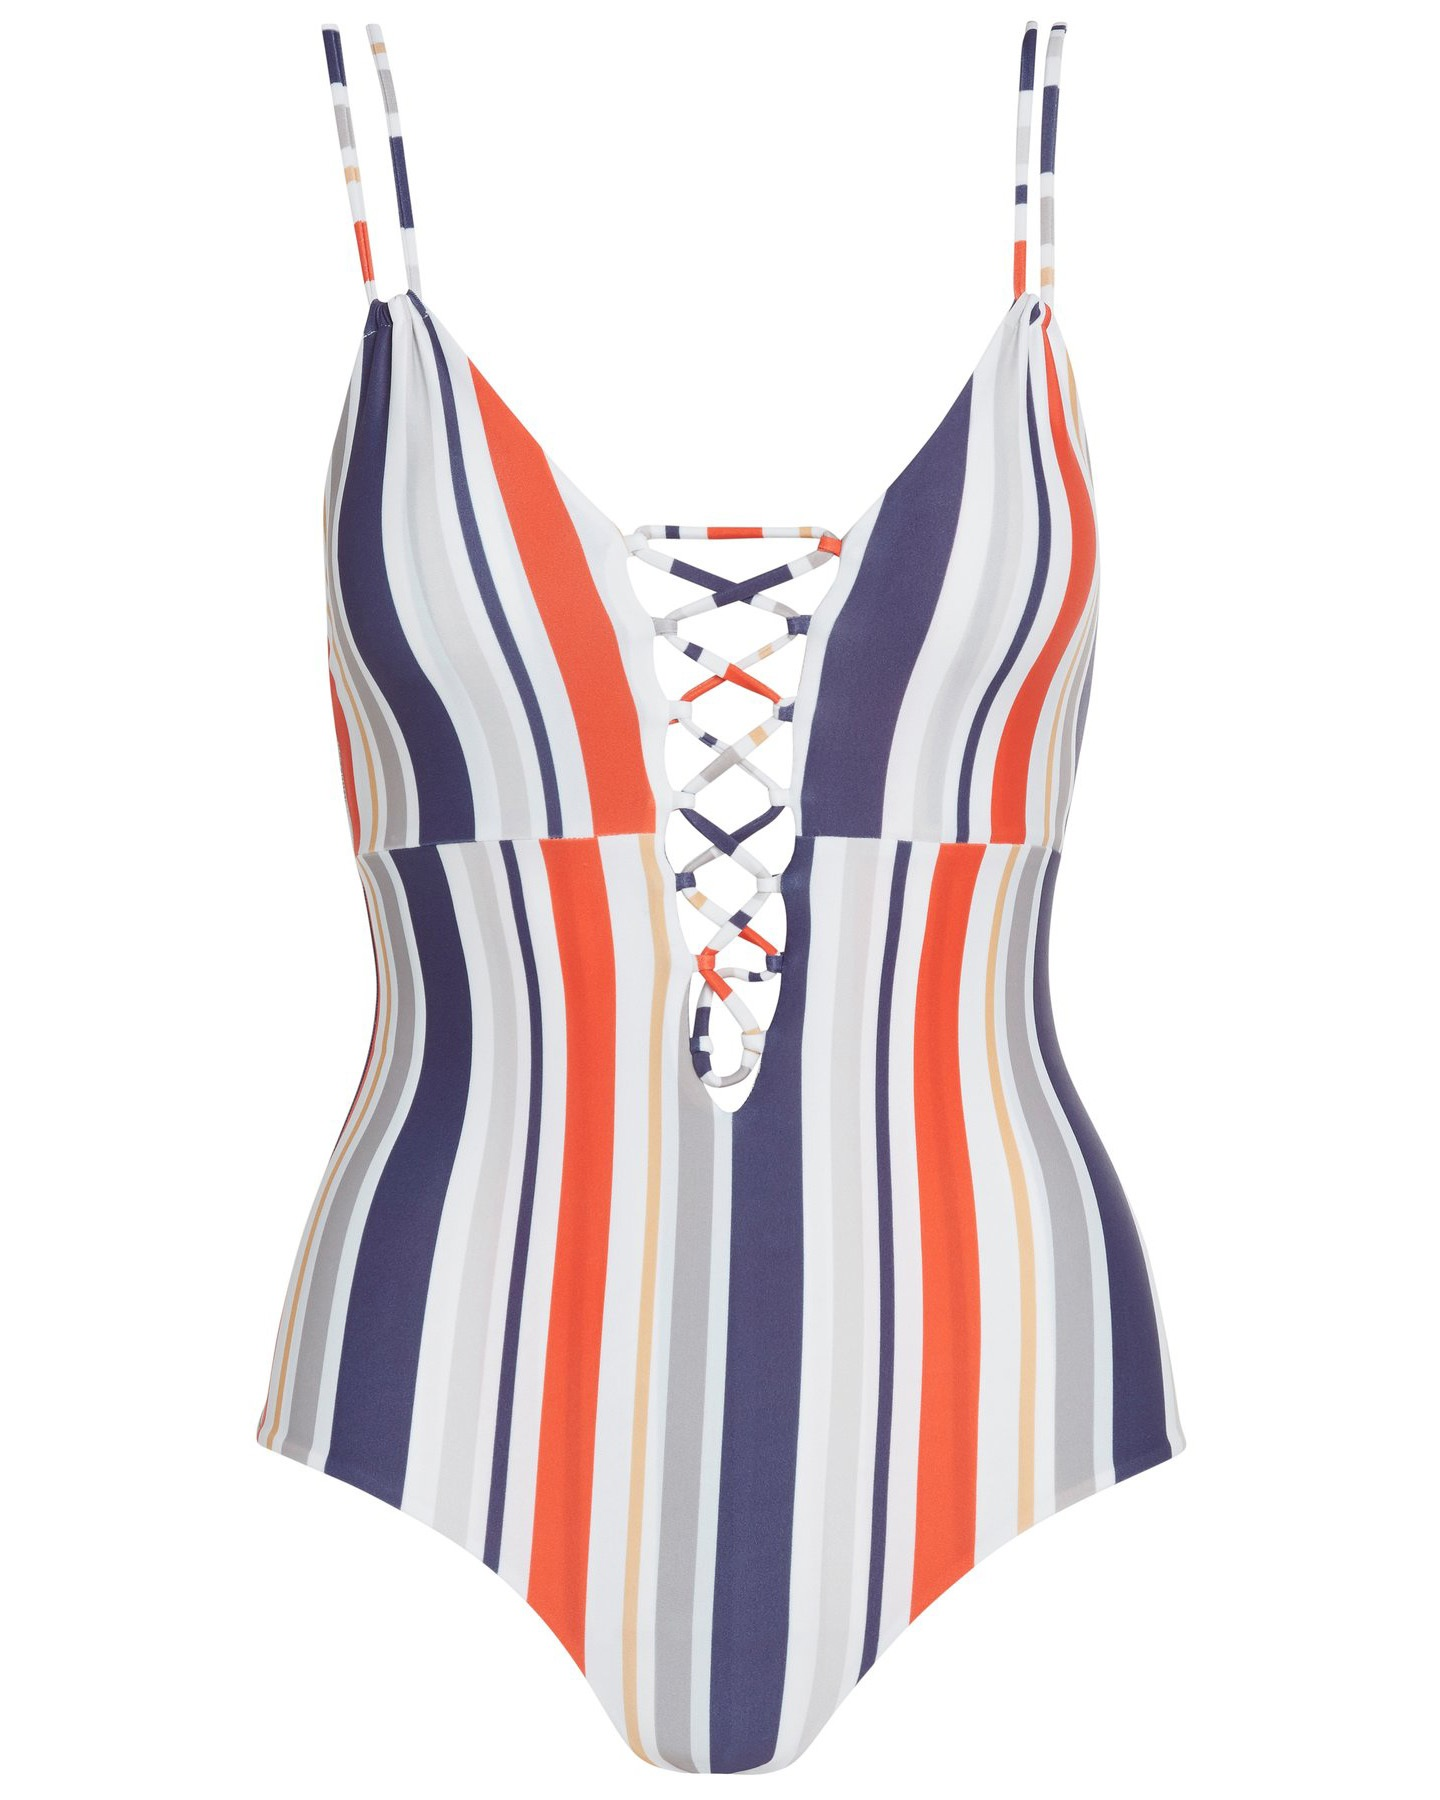 Cami and Jax Marla One Piece ($250)